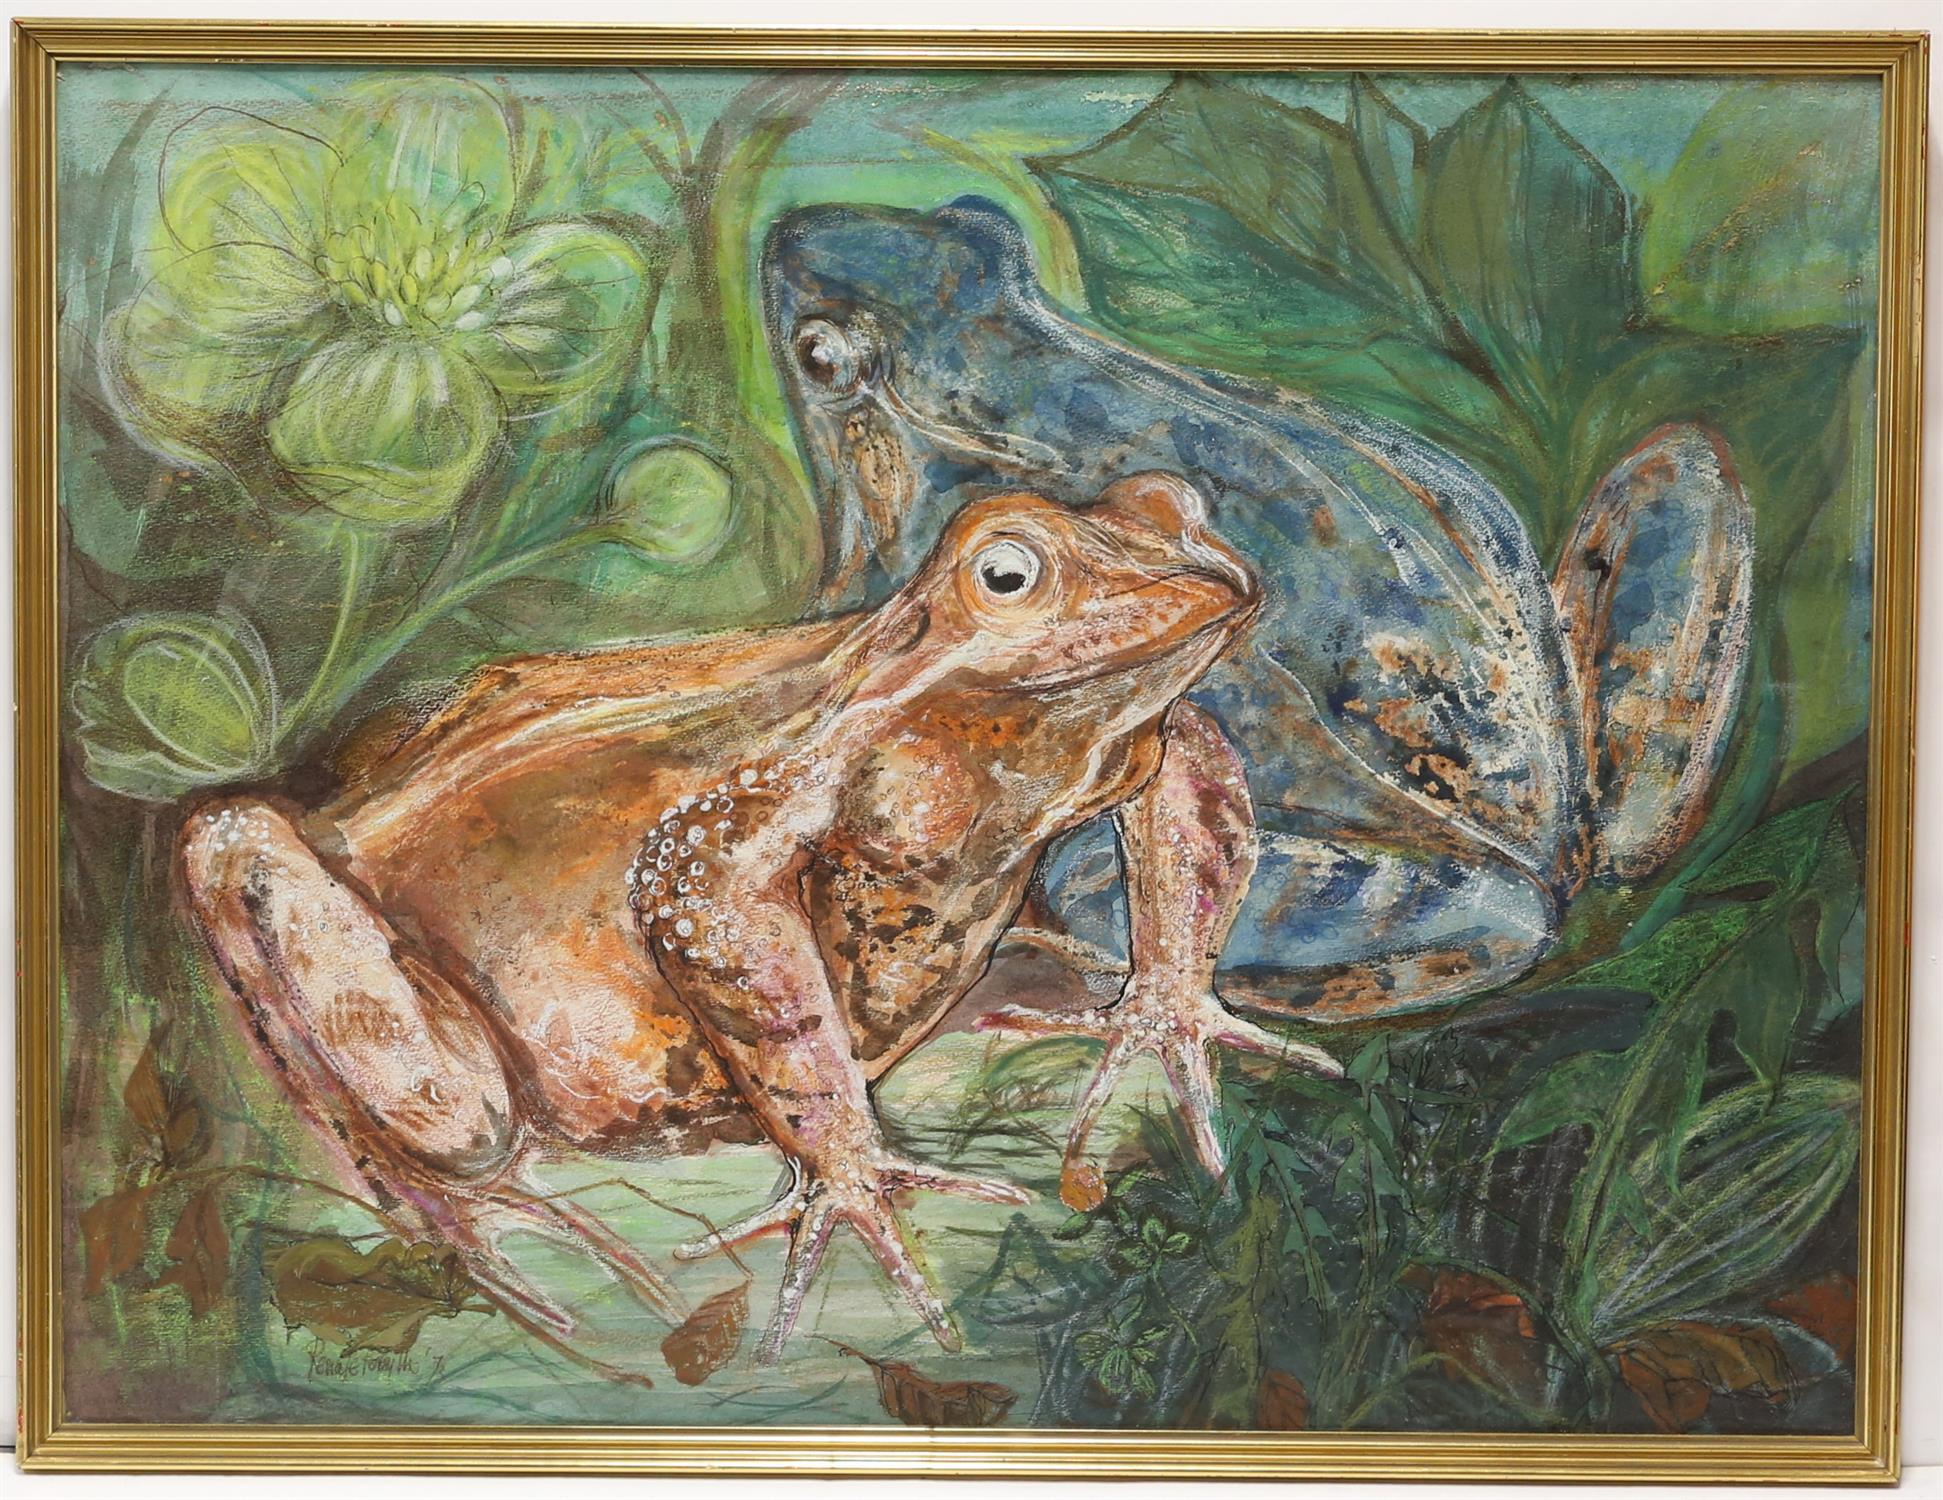 Renate Forsyth, 'Frogs', wax and wash on paper, signed and dated '72 lower left, 57 x 76cm, - Image 2 of 6